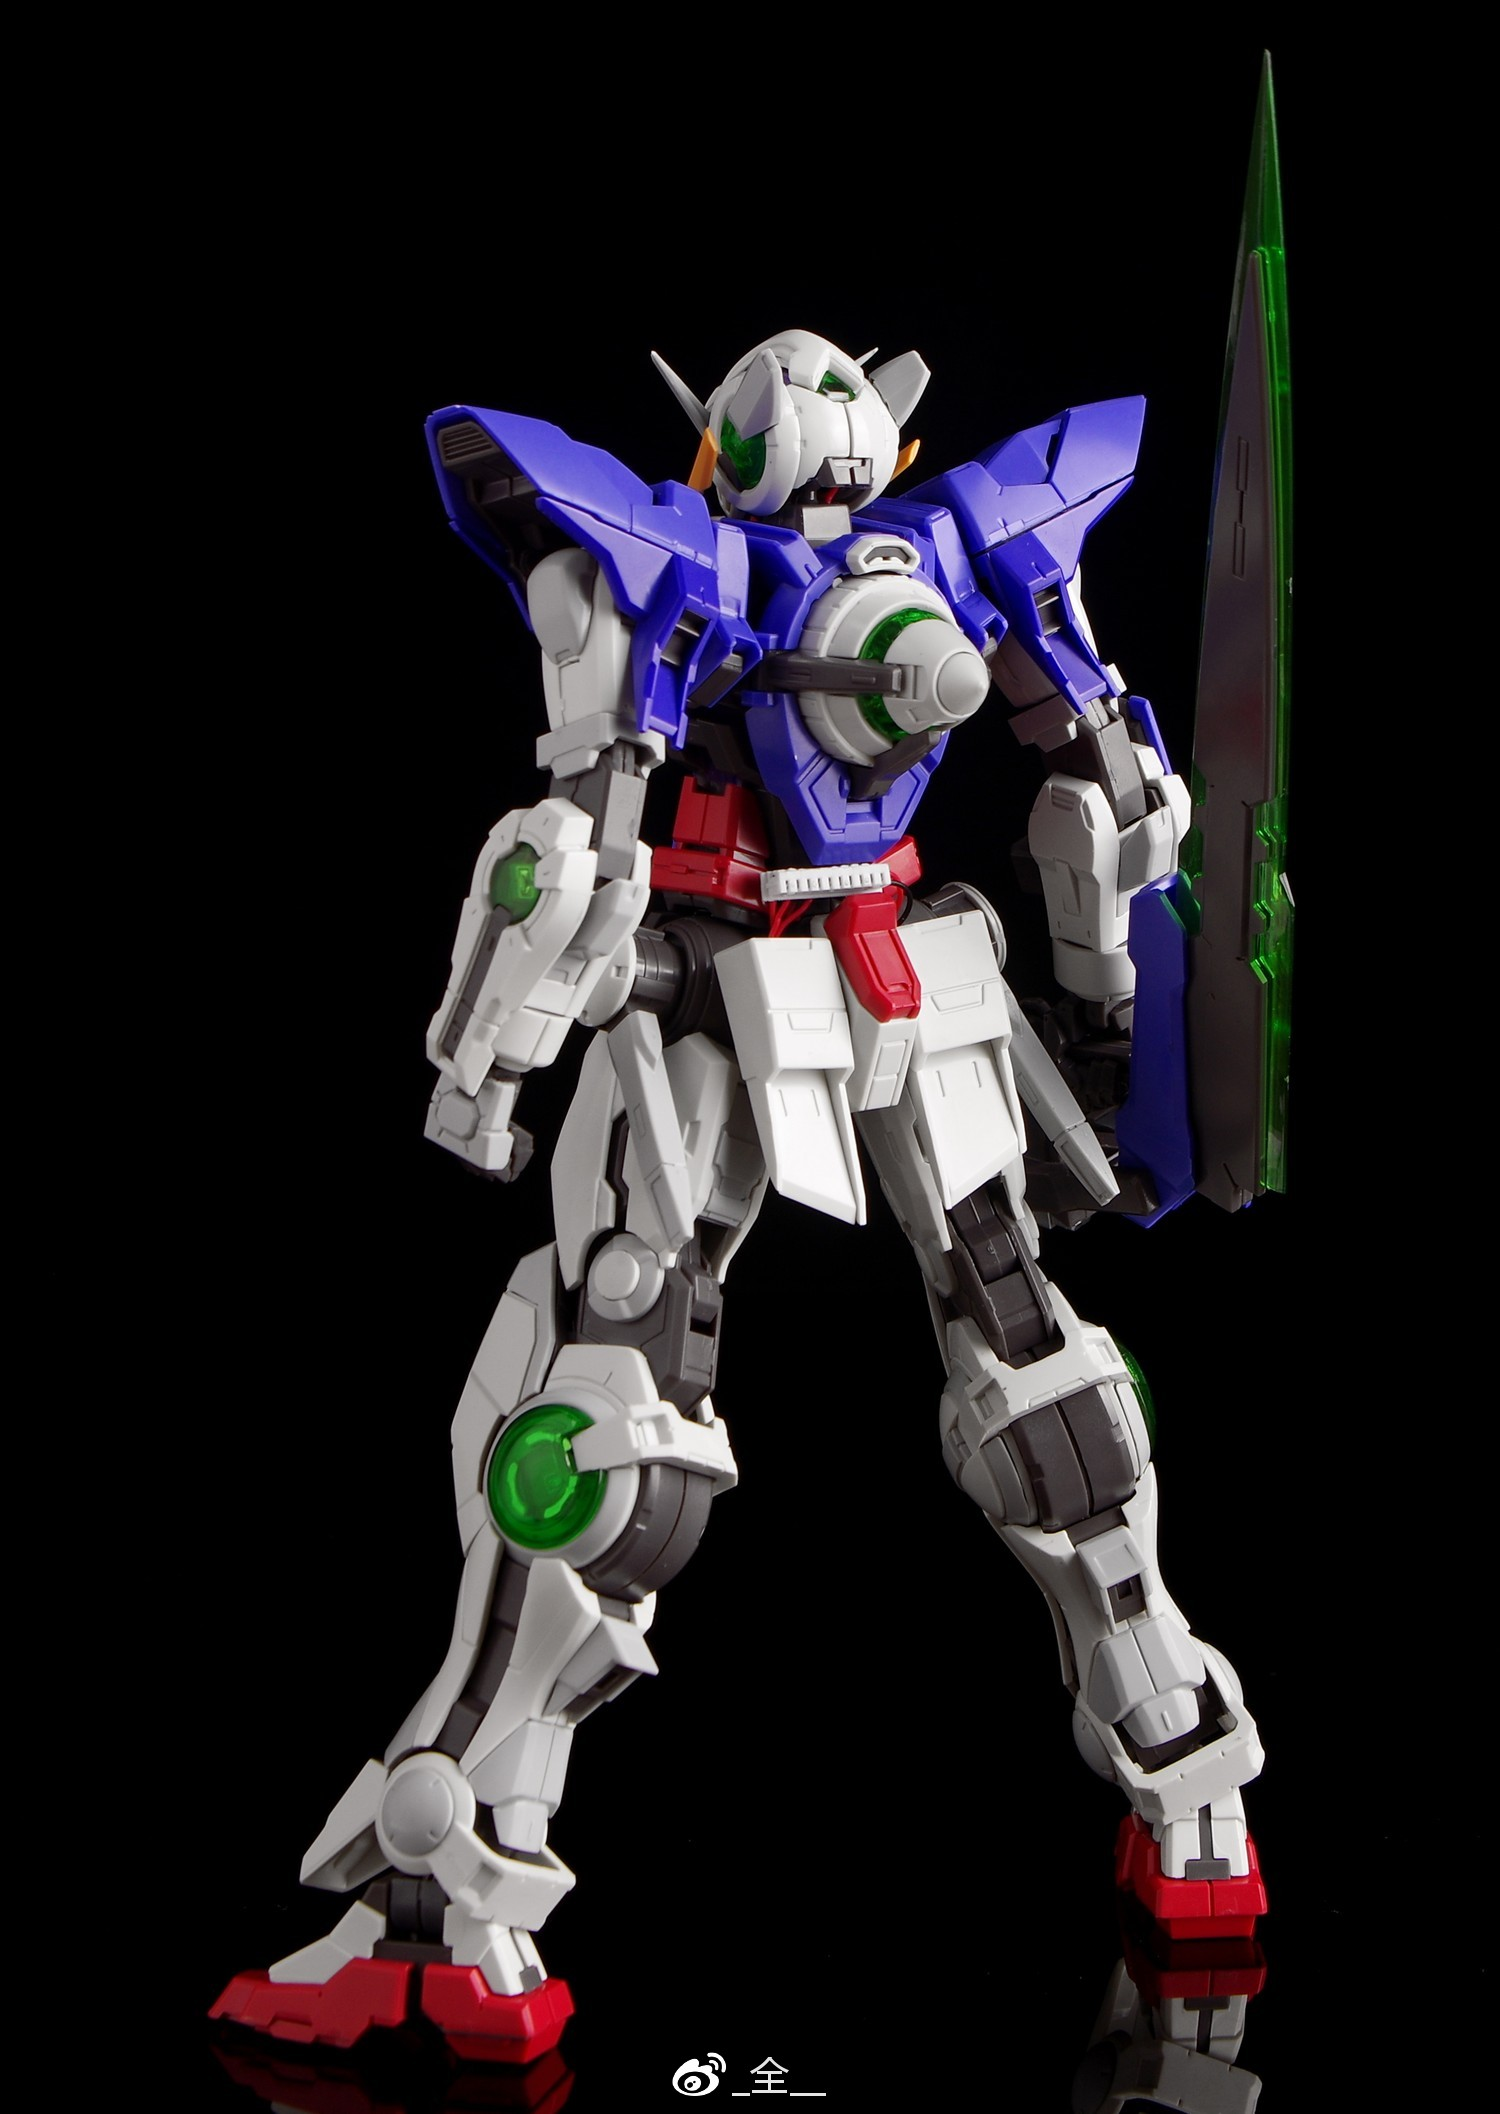 S269_mg_exia_led_hobby_star_inask_086.jpg